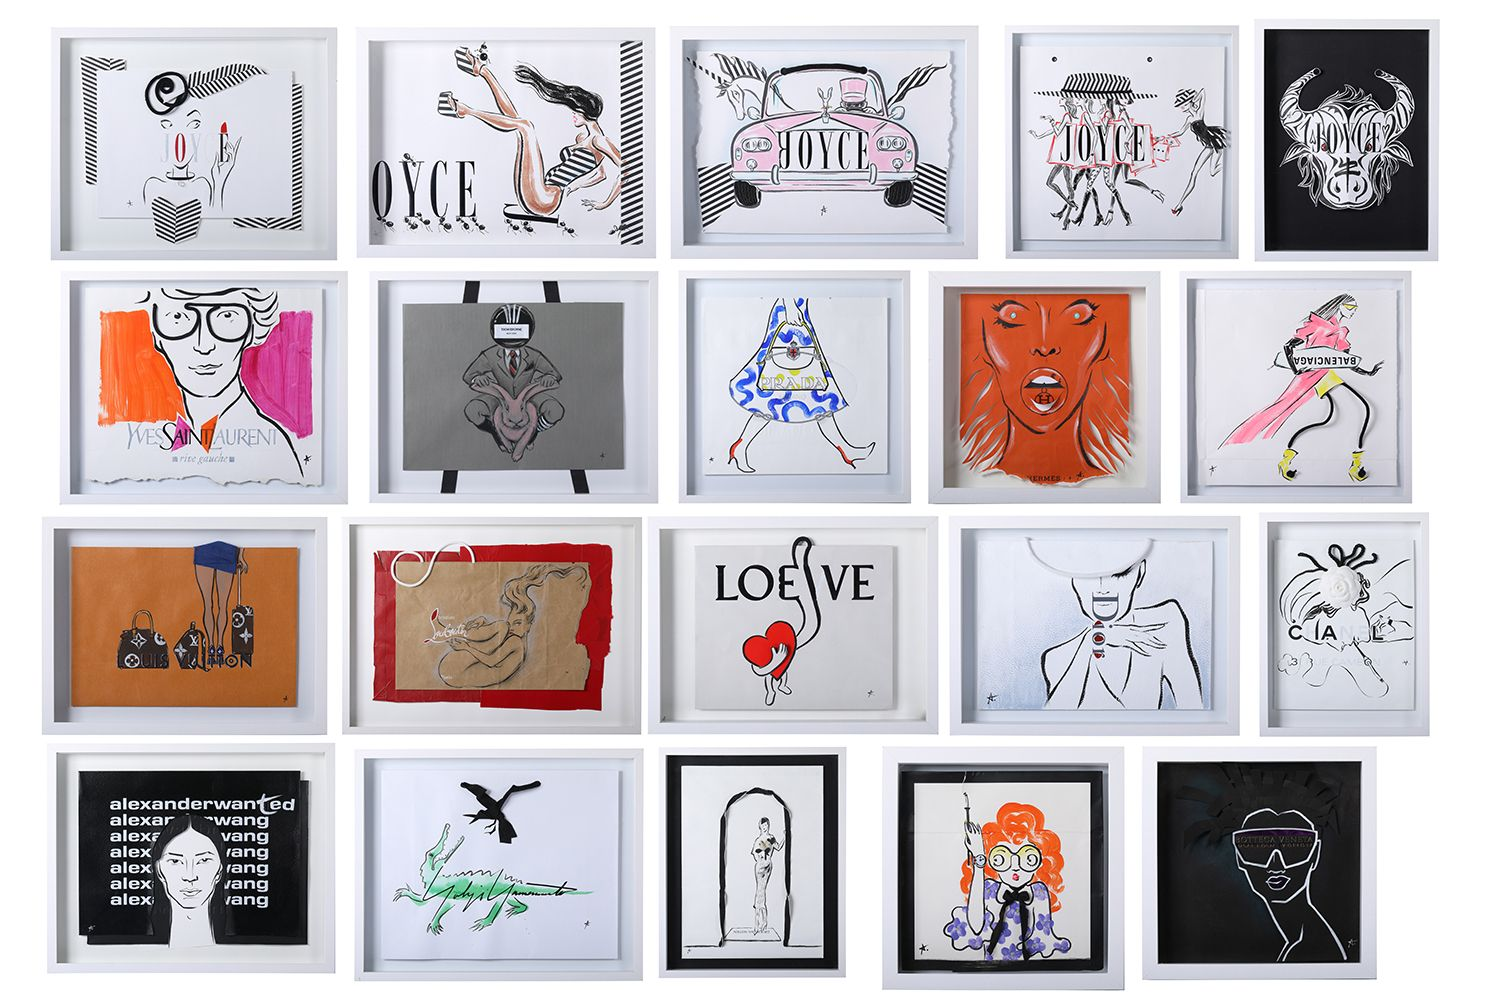 Joyce x Antoine Kruk Exhibition Reimagines Designer Shopping Bags As Art Pieces